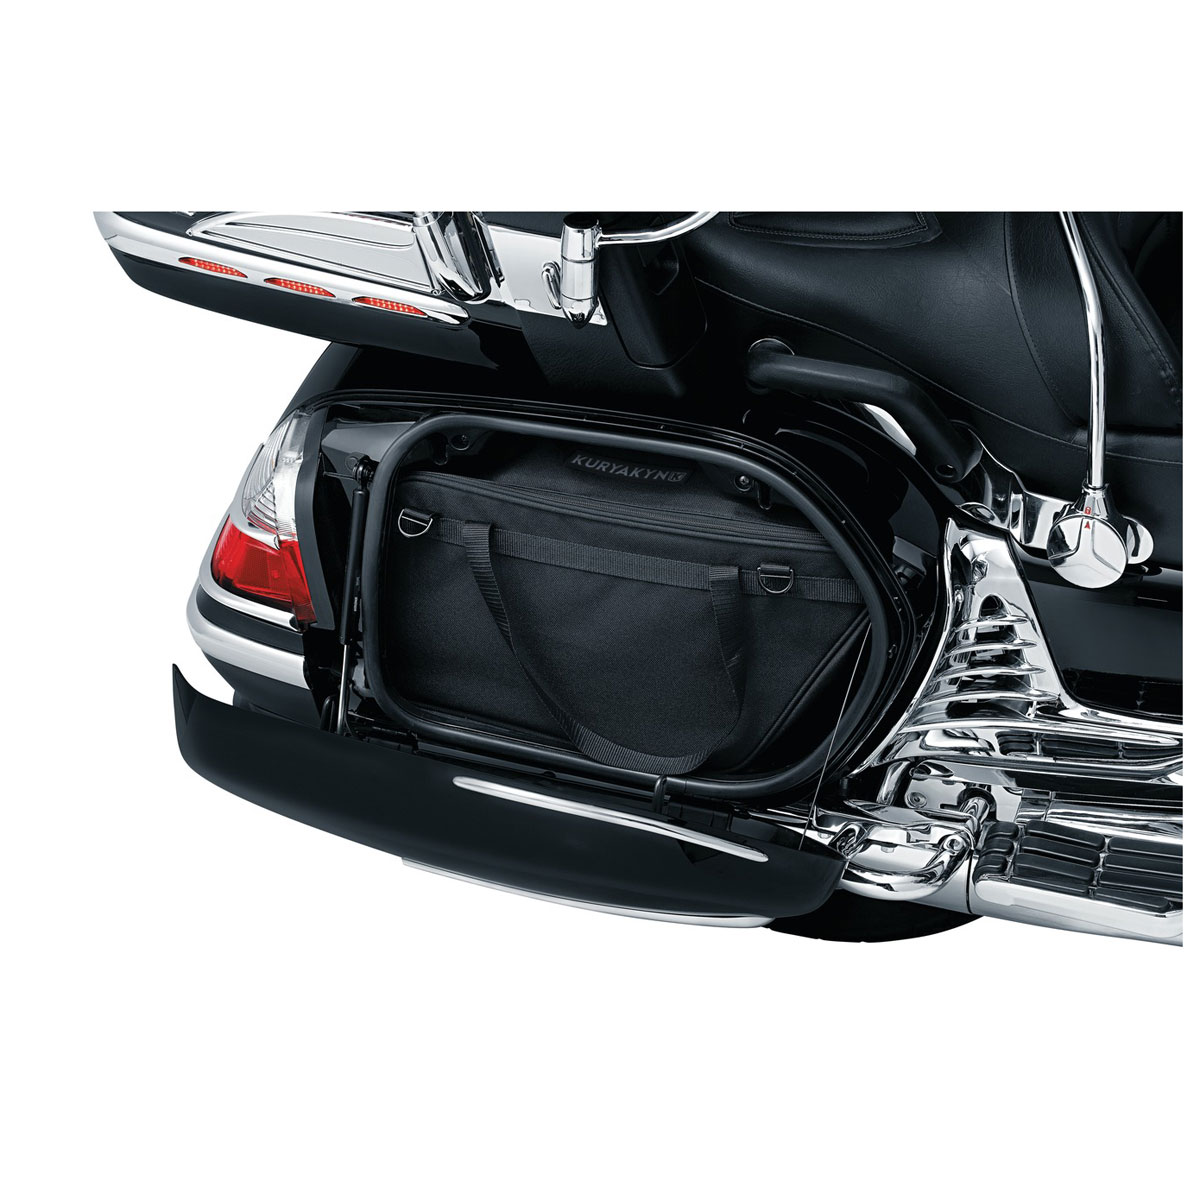 Kuryakyn Tour Trunk and Saddlebag Liners